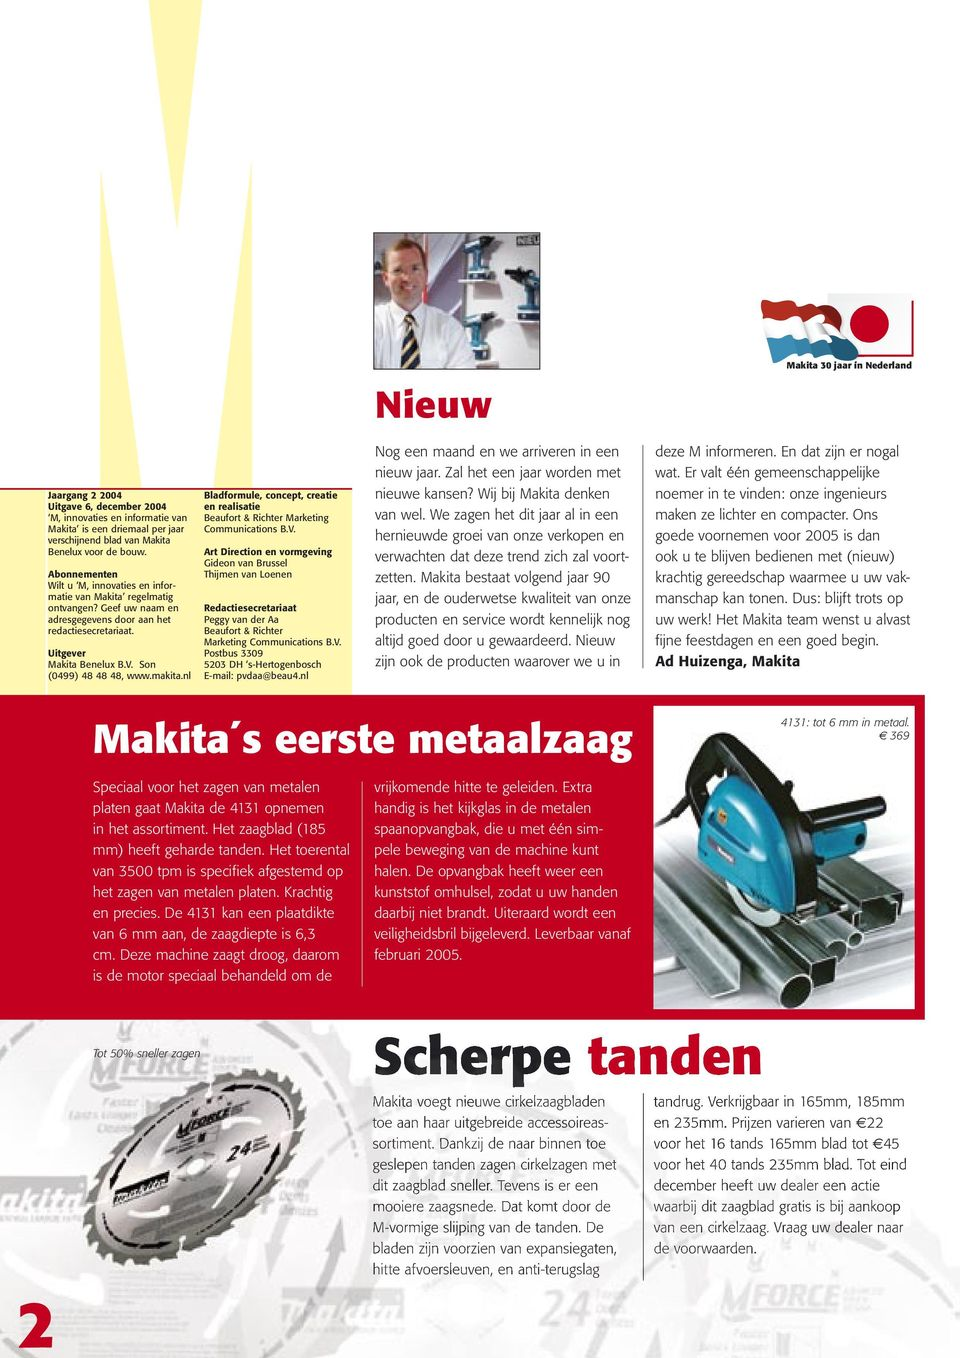 makita.nl Bladformule, concept, creatie en realisatie Beaufort & Richter Marketing Communications B.V.